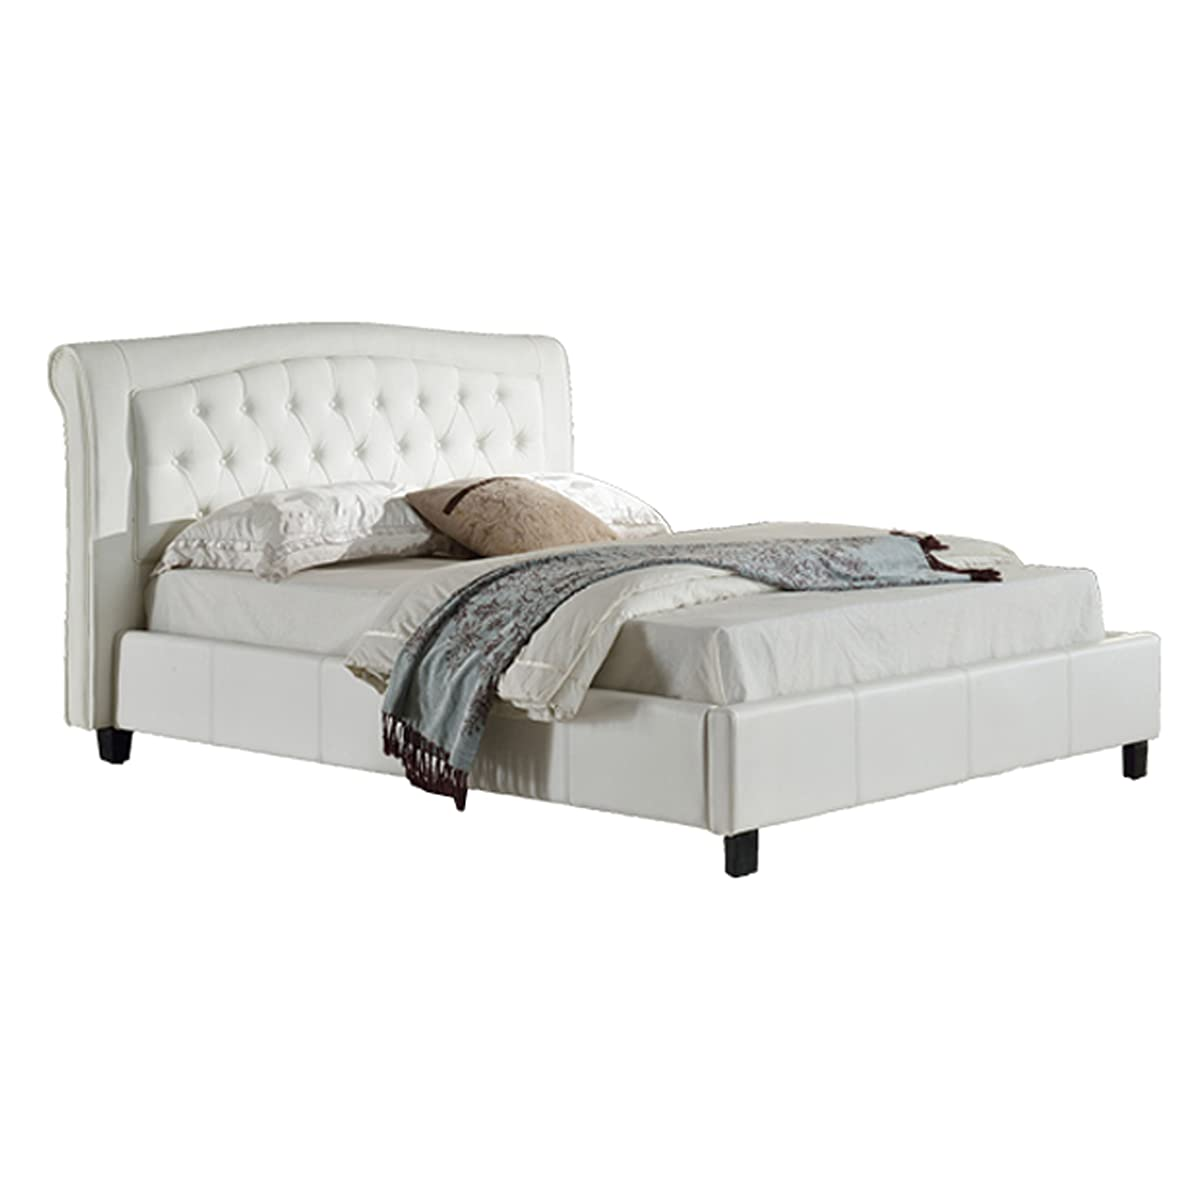 Milton Greens Stars Darcy PU Platform Bed with Tufted Headboard, Queen, White